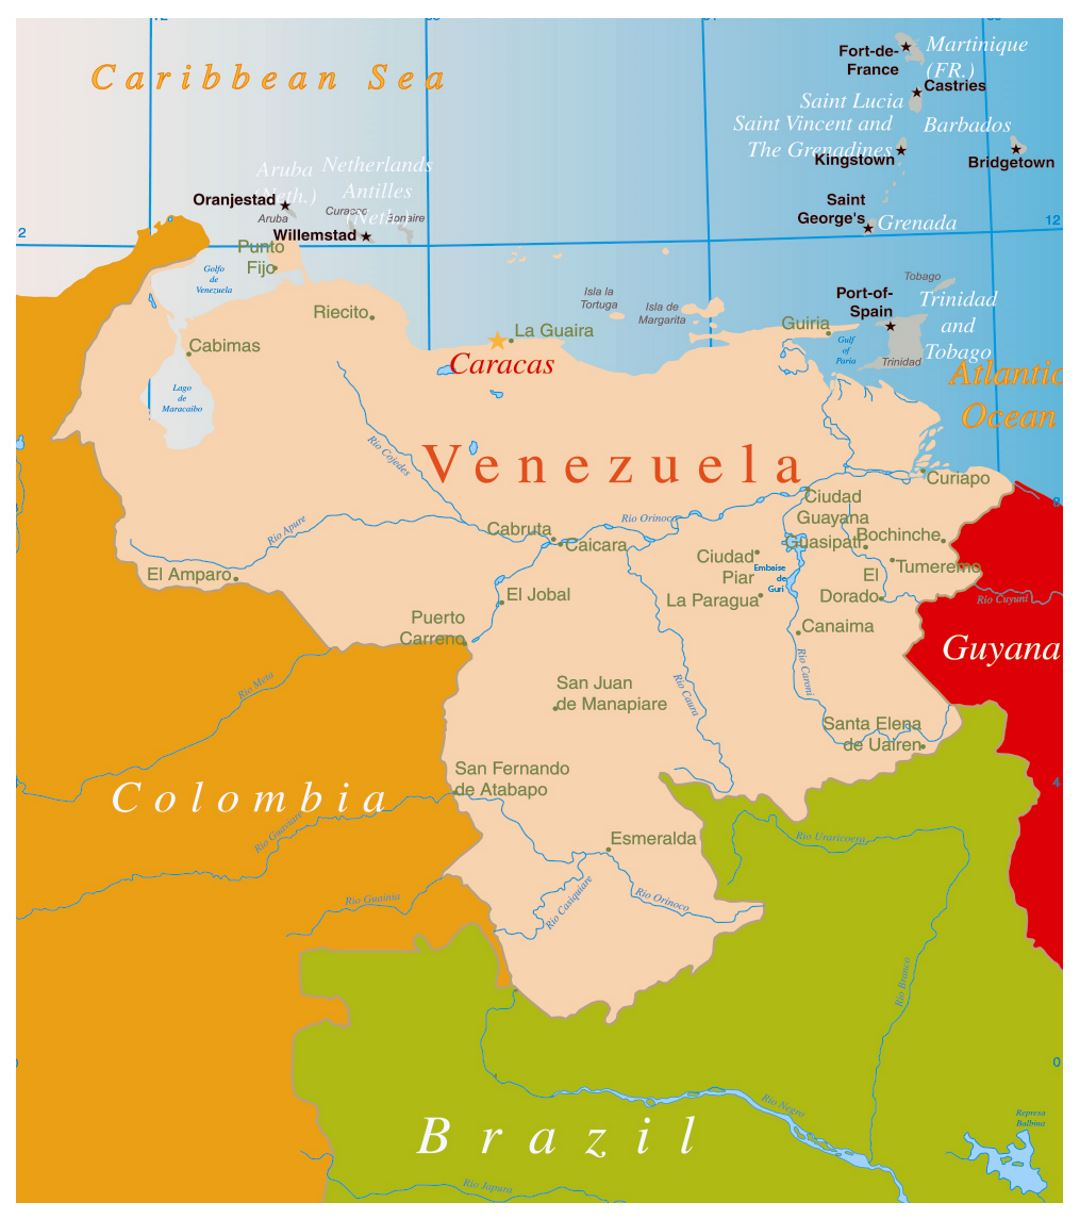 Large Political Map Of Venezuela With Major Cities Venezuela - Caracas on world map